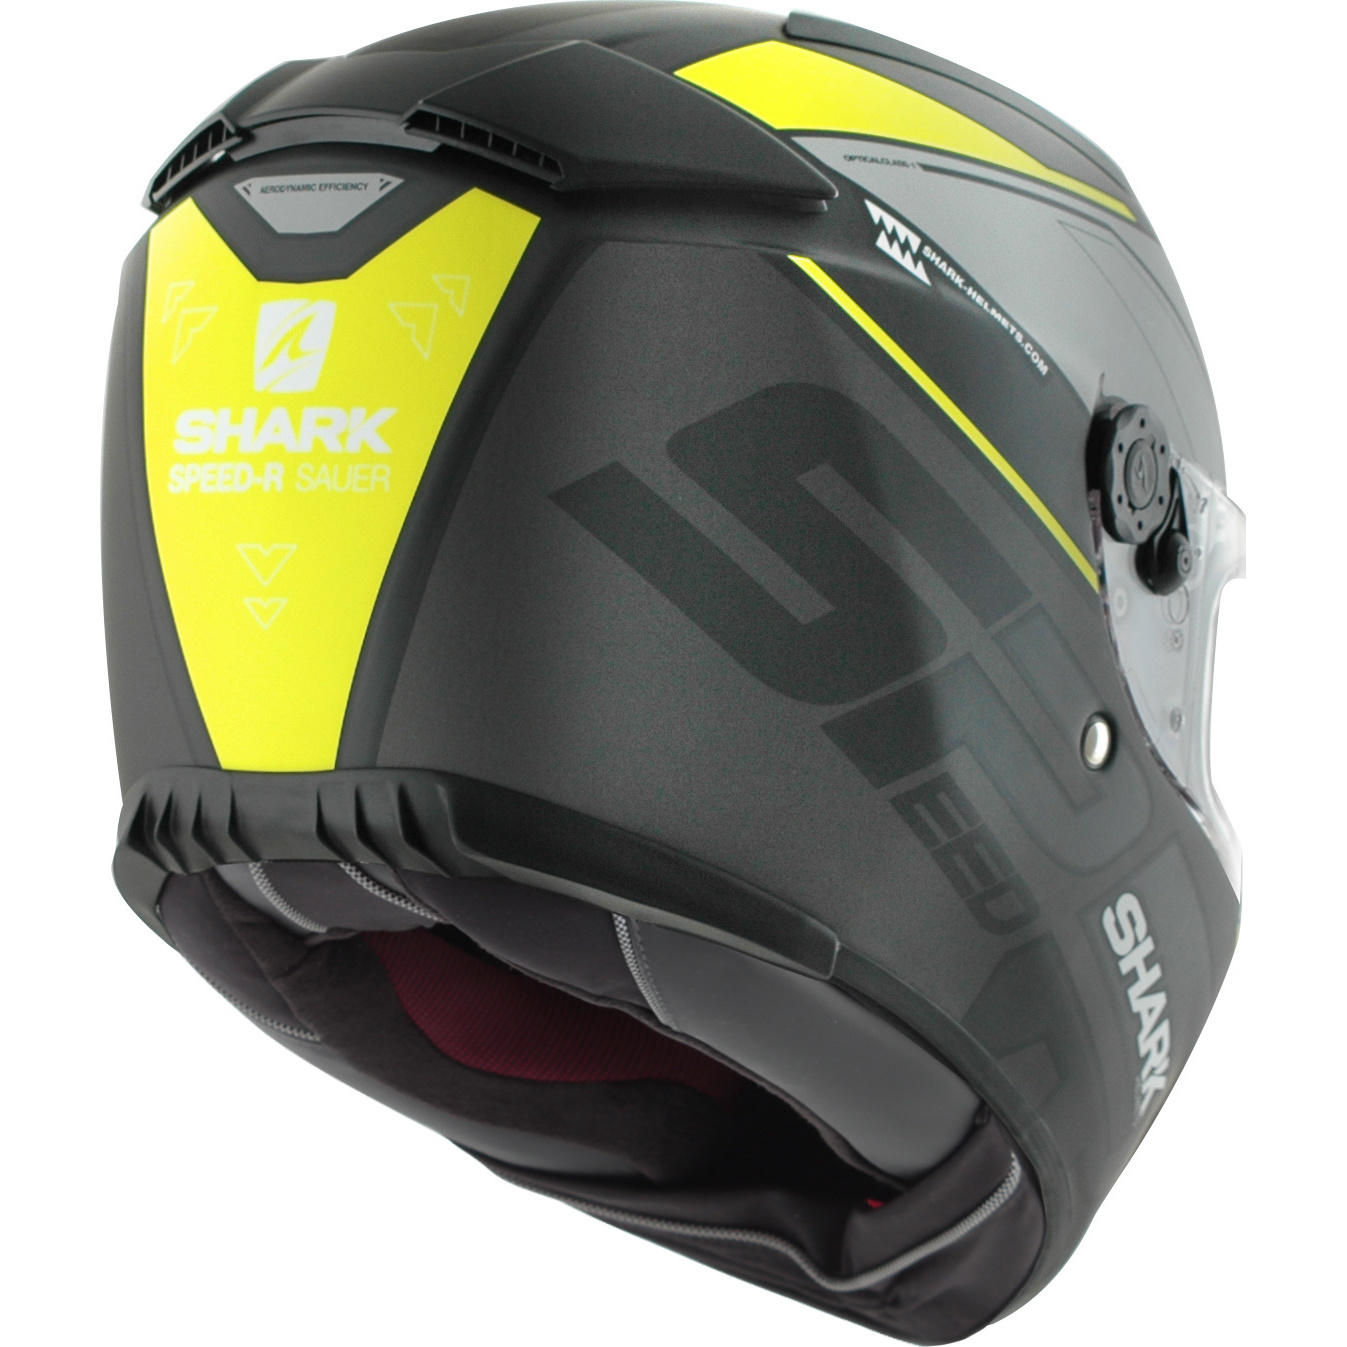 shark speed r sauer matt black hi viz motorcycle helmet kyk race sun visor safe ebay. Black Bedroom Furniture Sets. Home Design Ideas